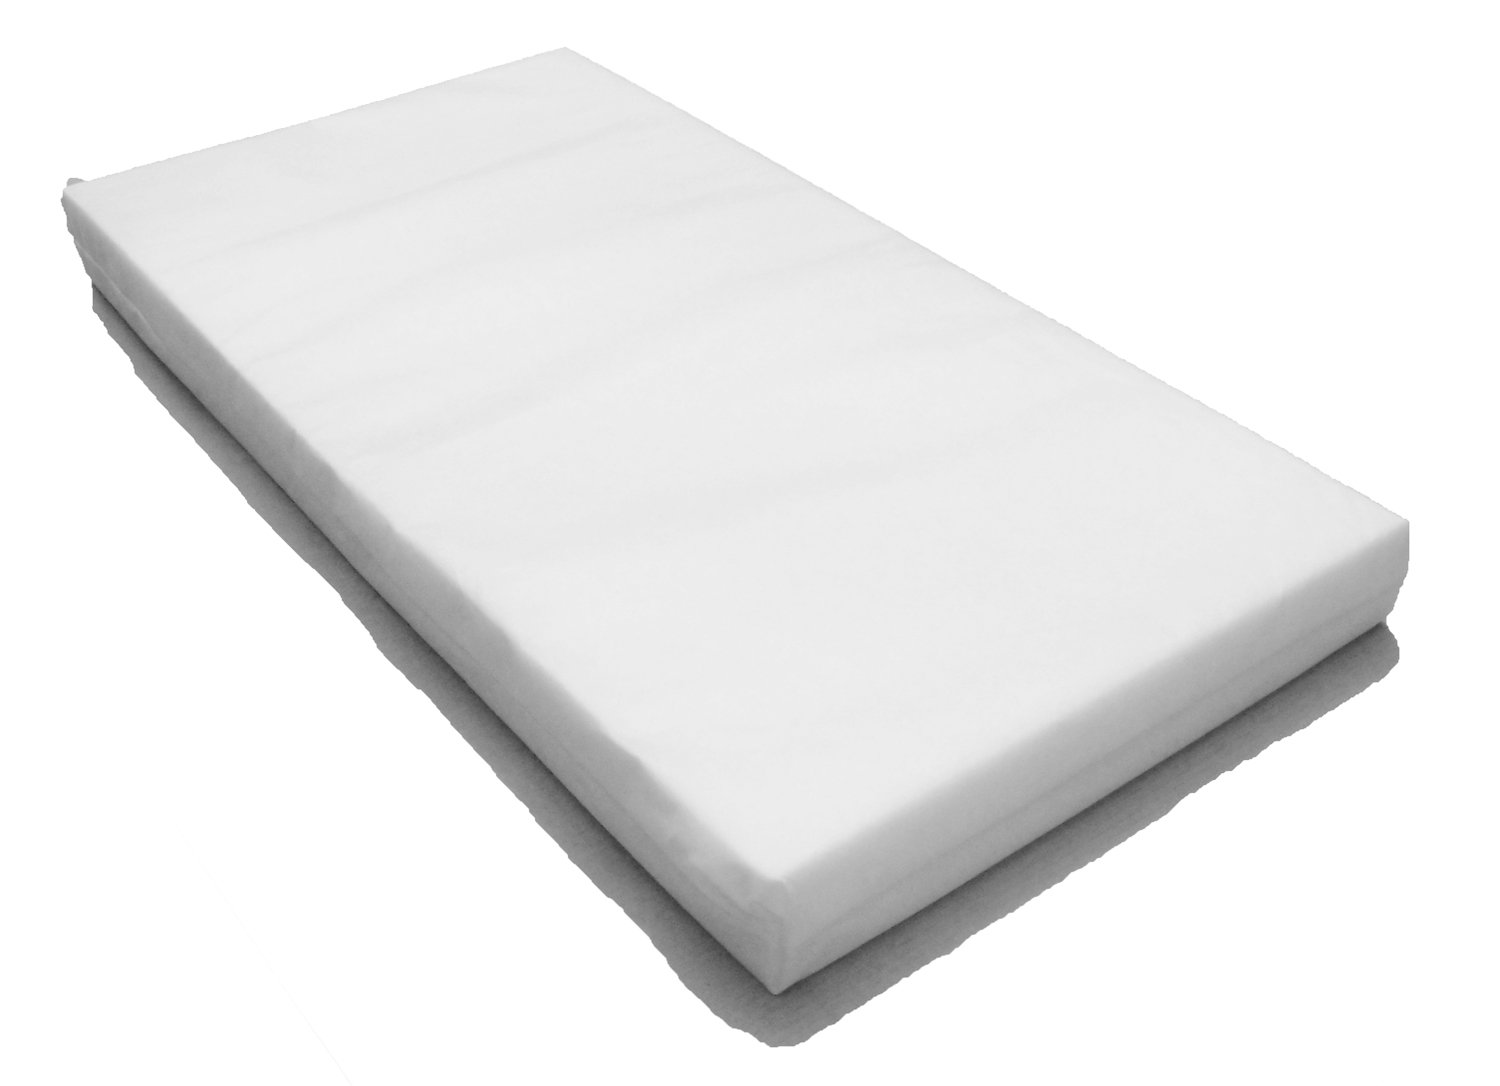 Spacesaver Baby Cot Mattress - Superior Foam Mattress Size 100 x 52 cm x 10cm THICK SS-100